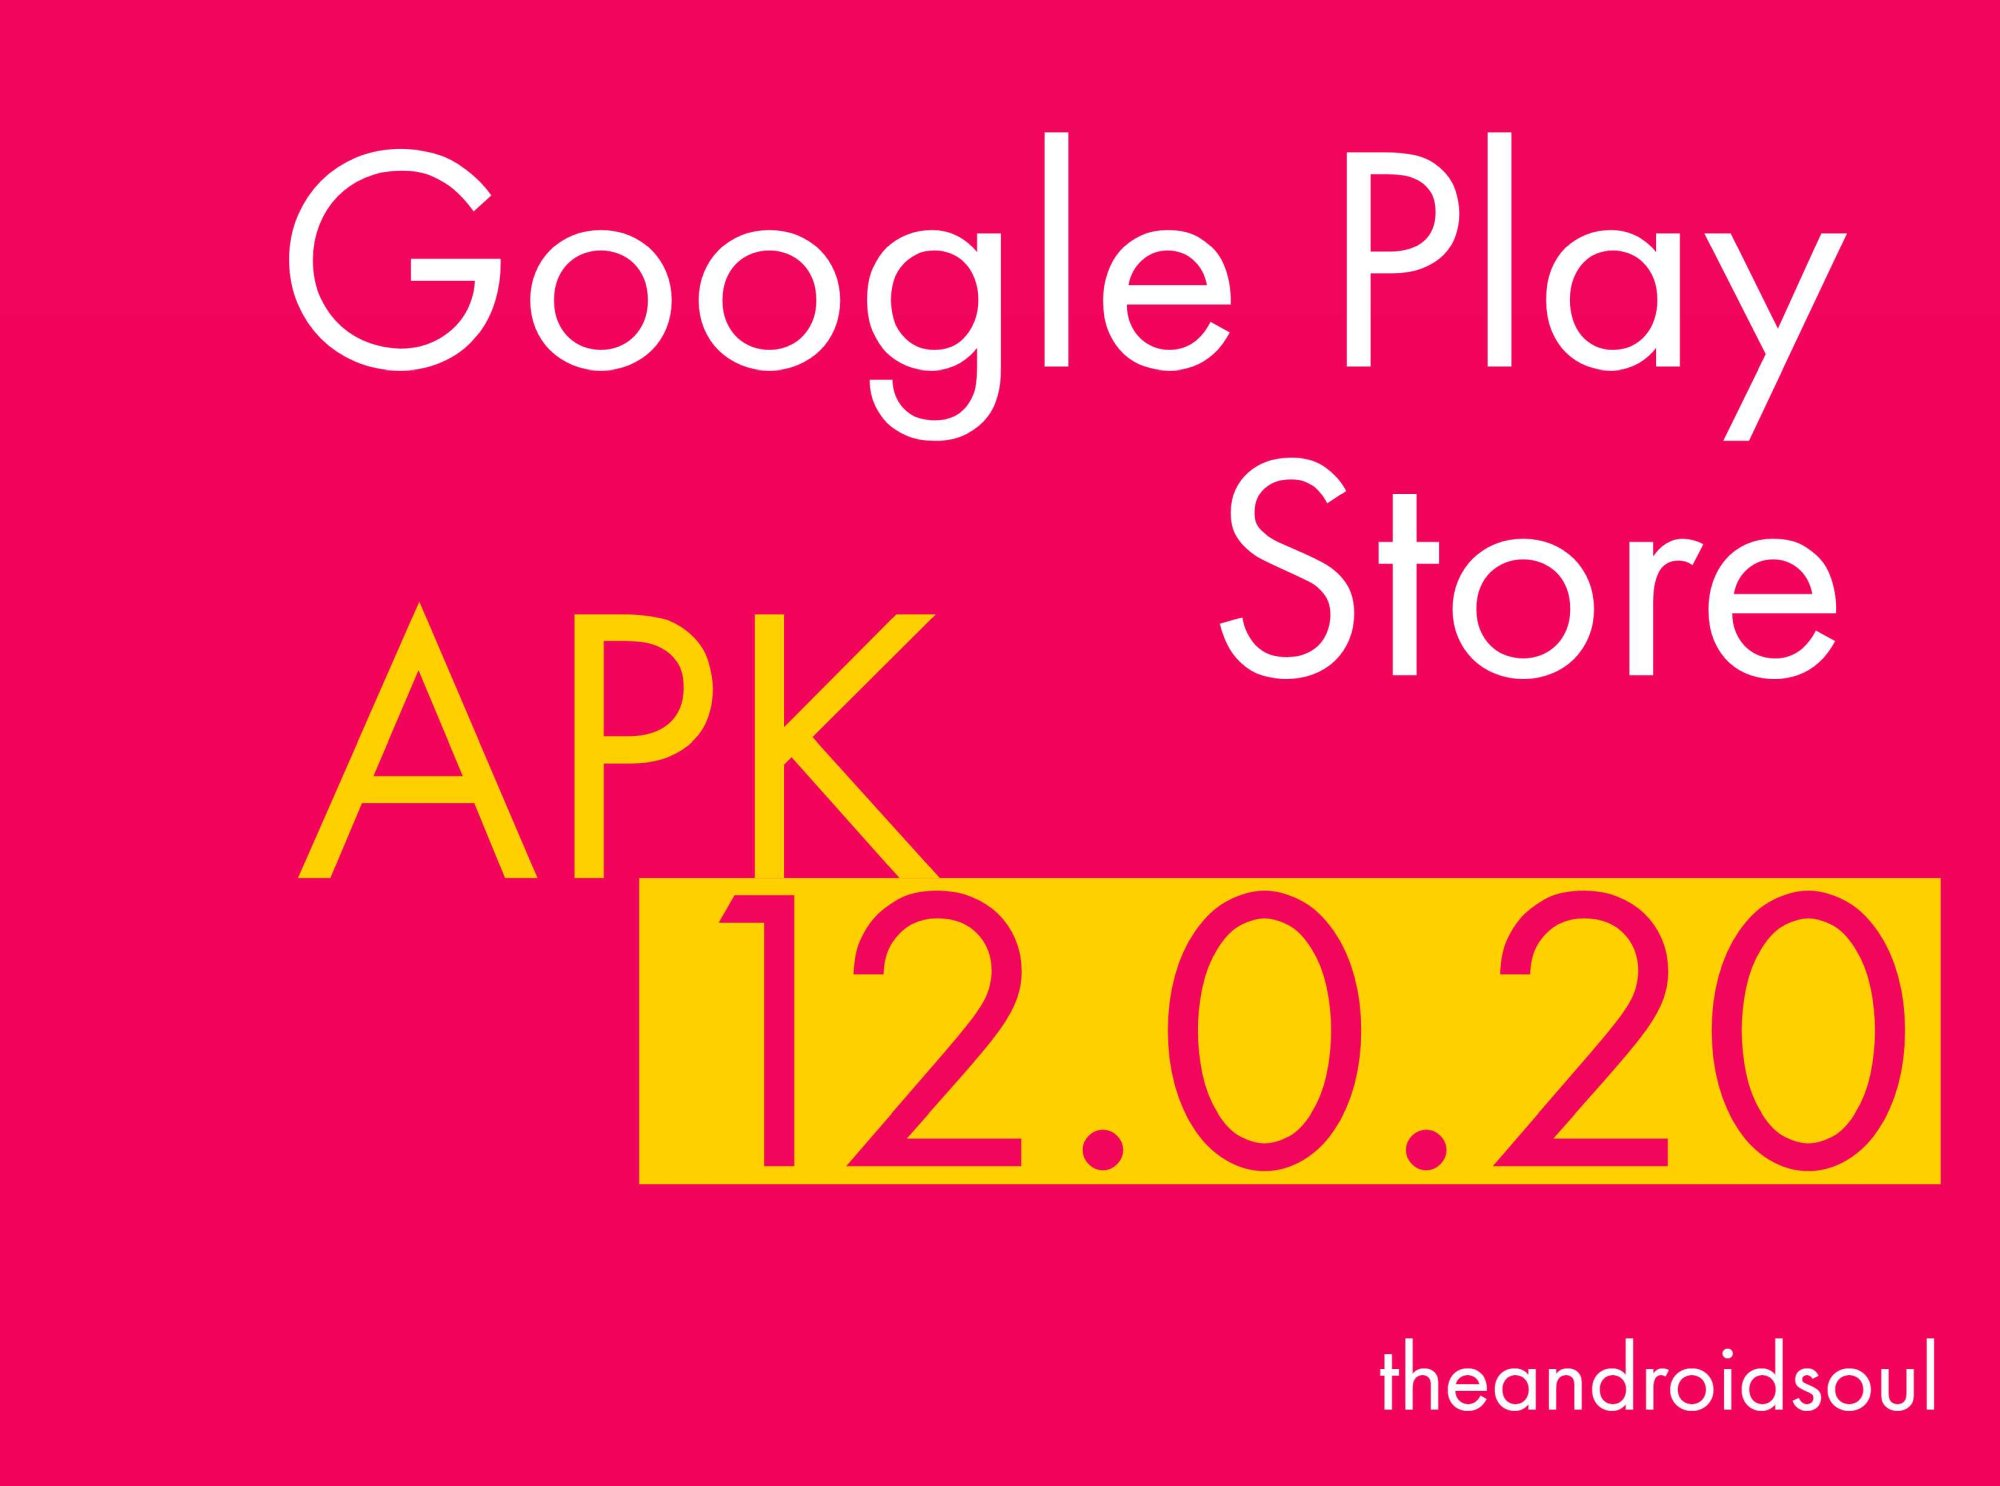 Google Play Store APK version 12 0 20 now available to download